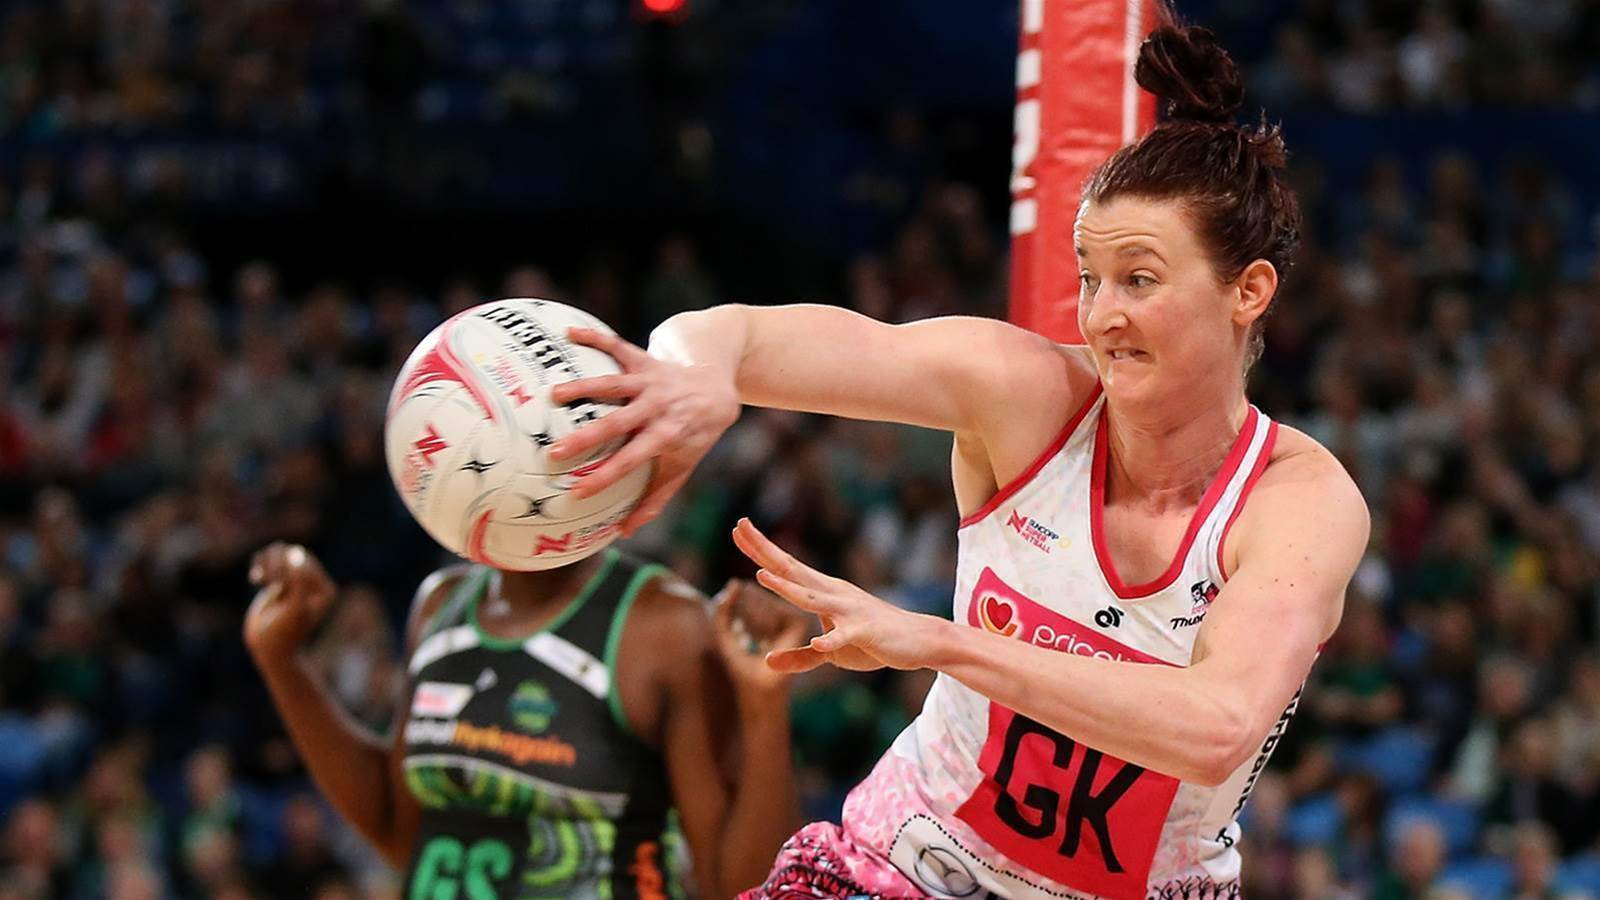 Kate Shimmin is just champion!